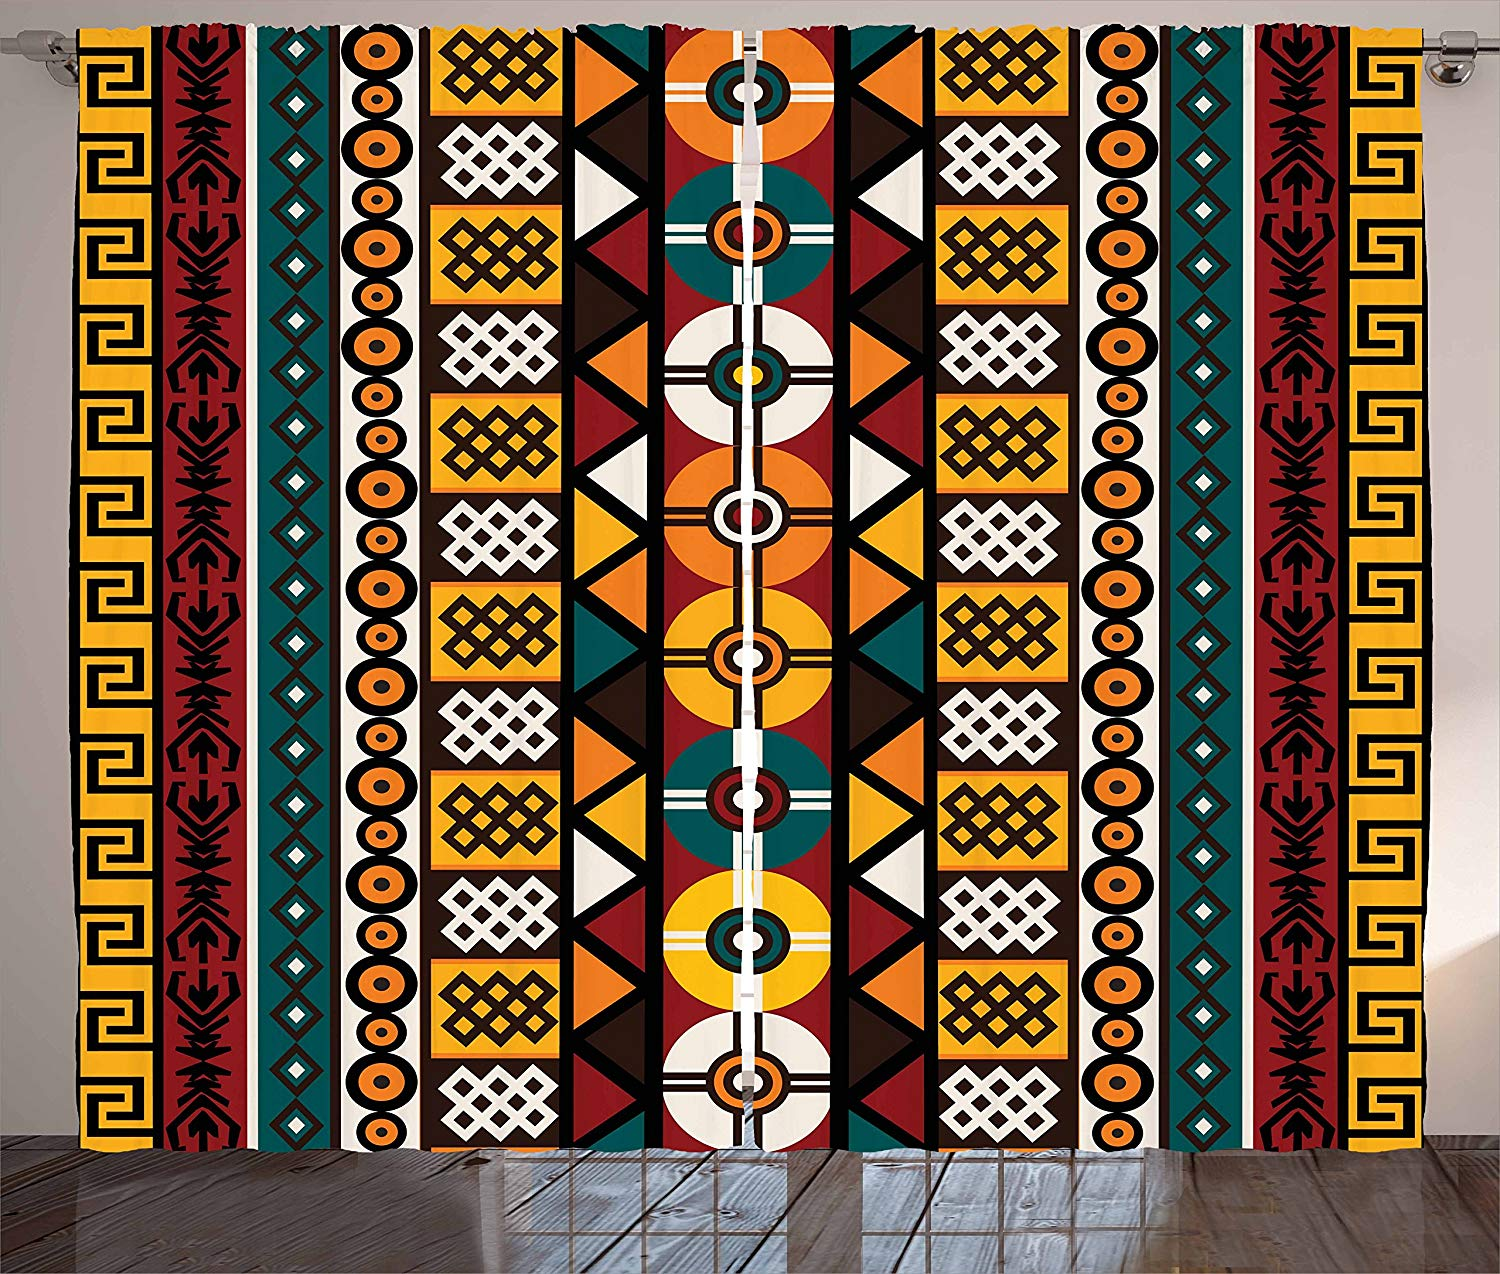 Kente Pattern Curtains Vertical Borders Inspired By Primitive African Cultures Geometrical Design Living Room Bedroom Window